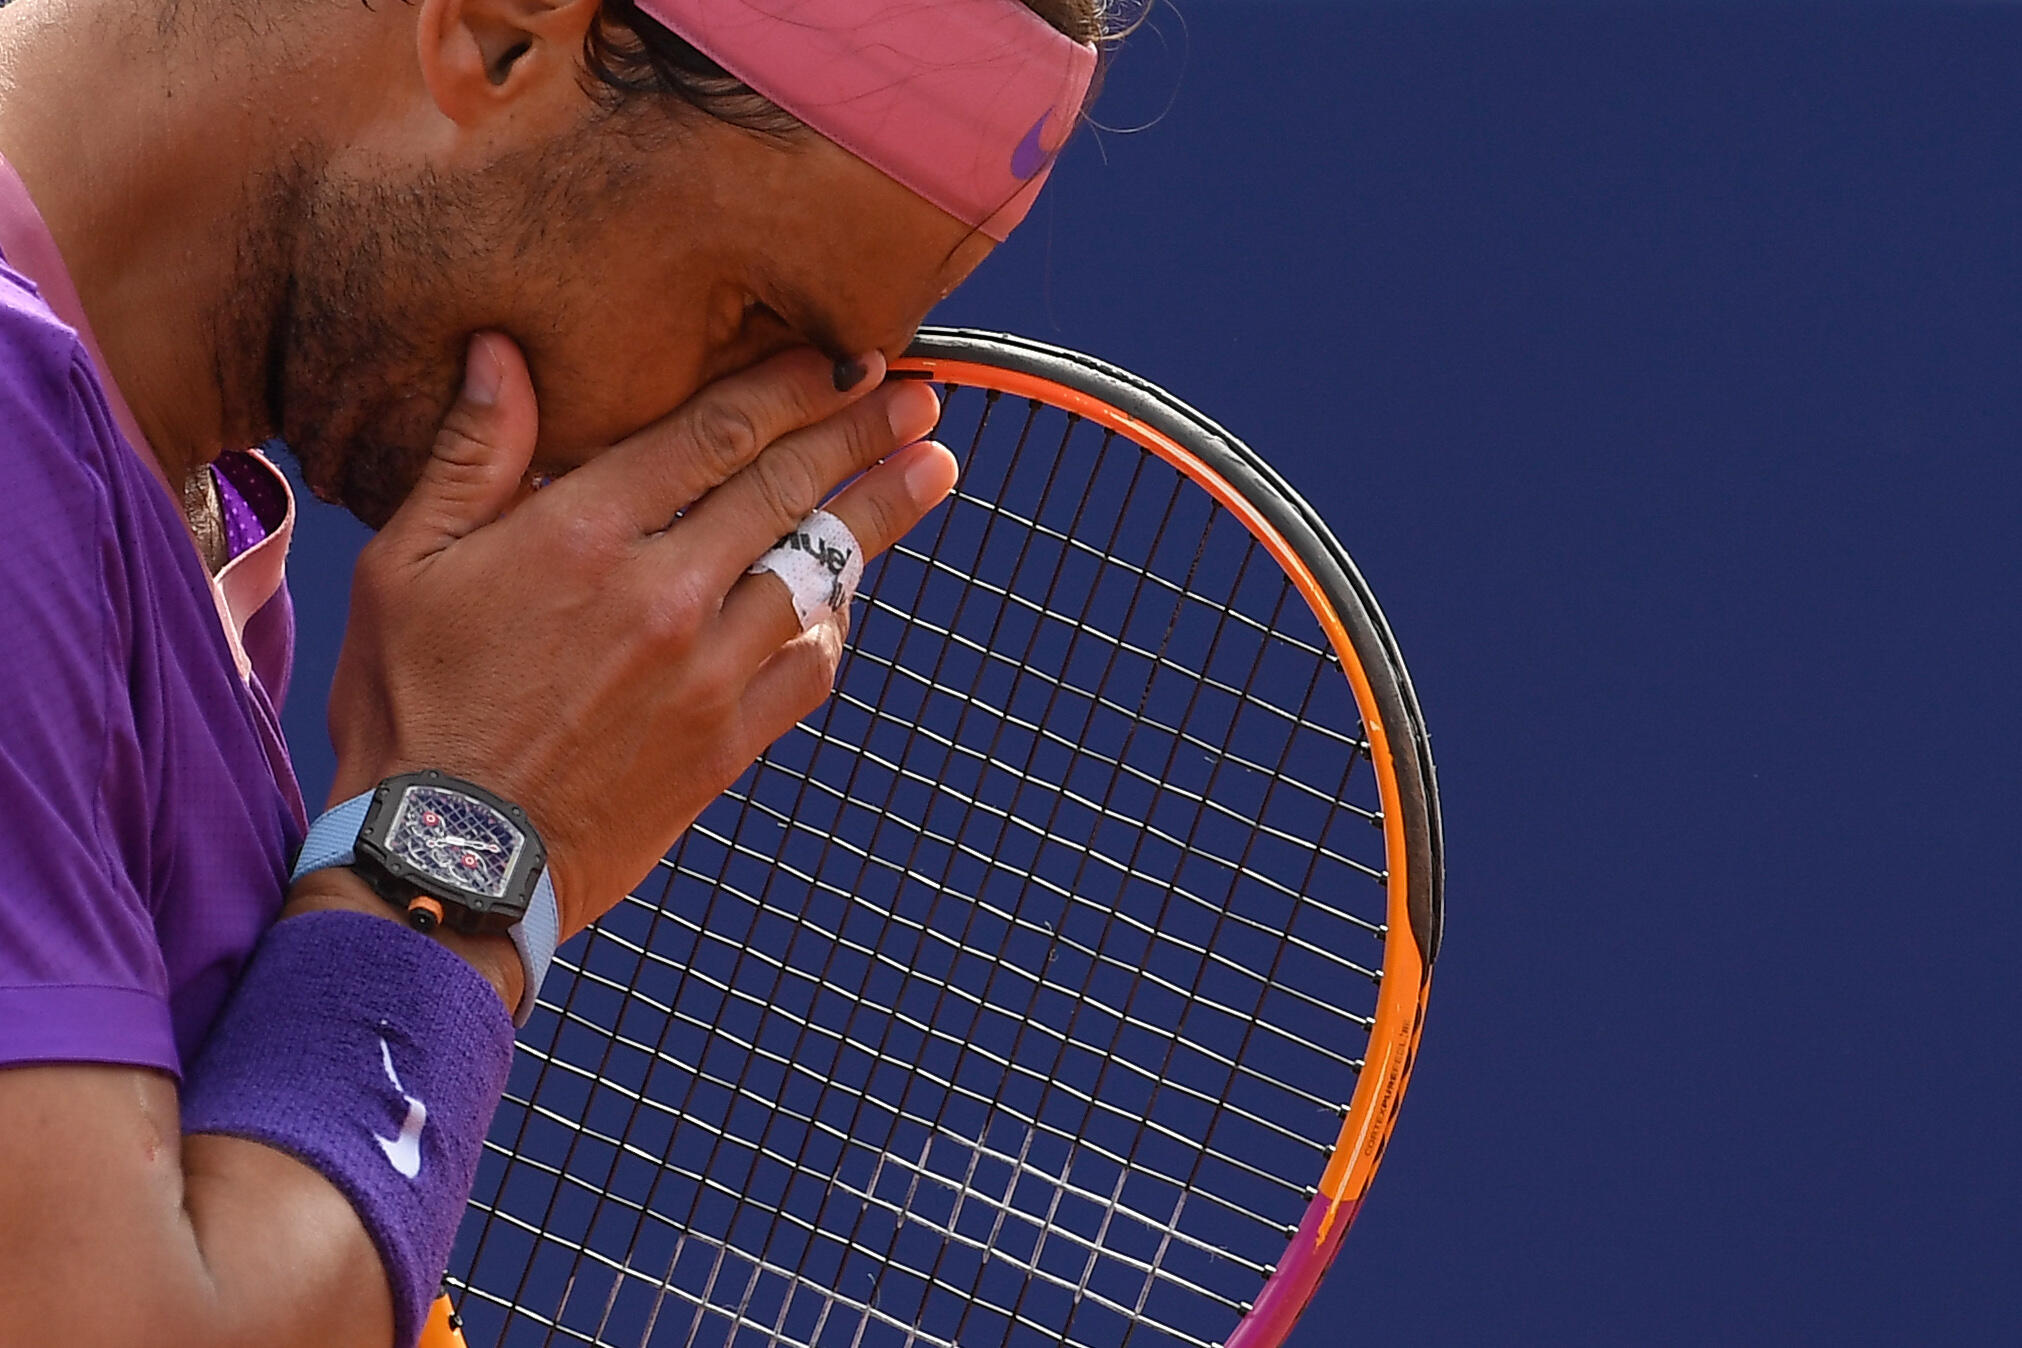 Tennisman Rafael Nadal has pulled out of the US Open, effectively ending his 2021 season.